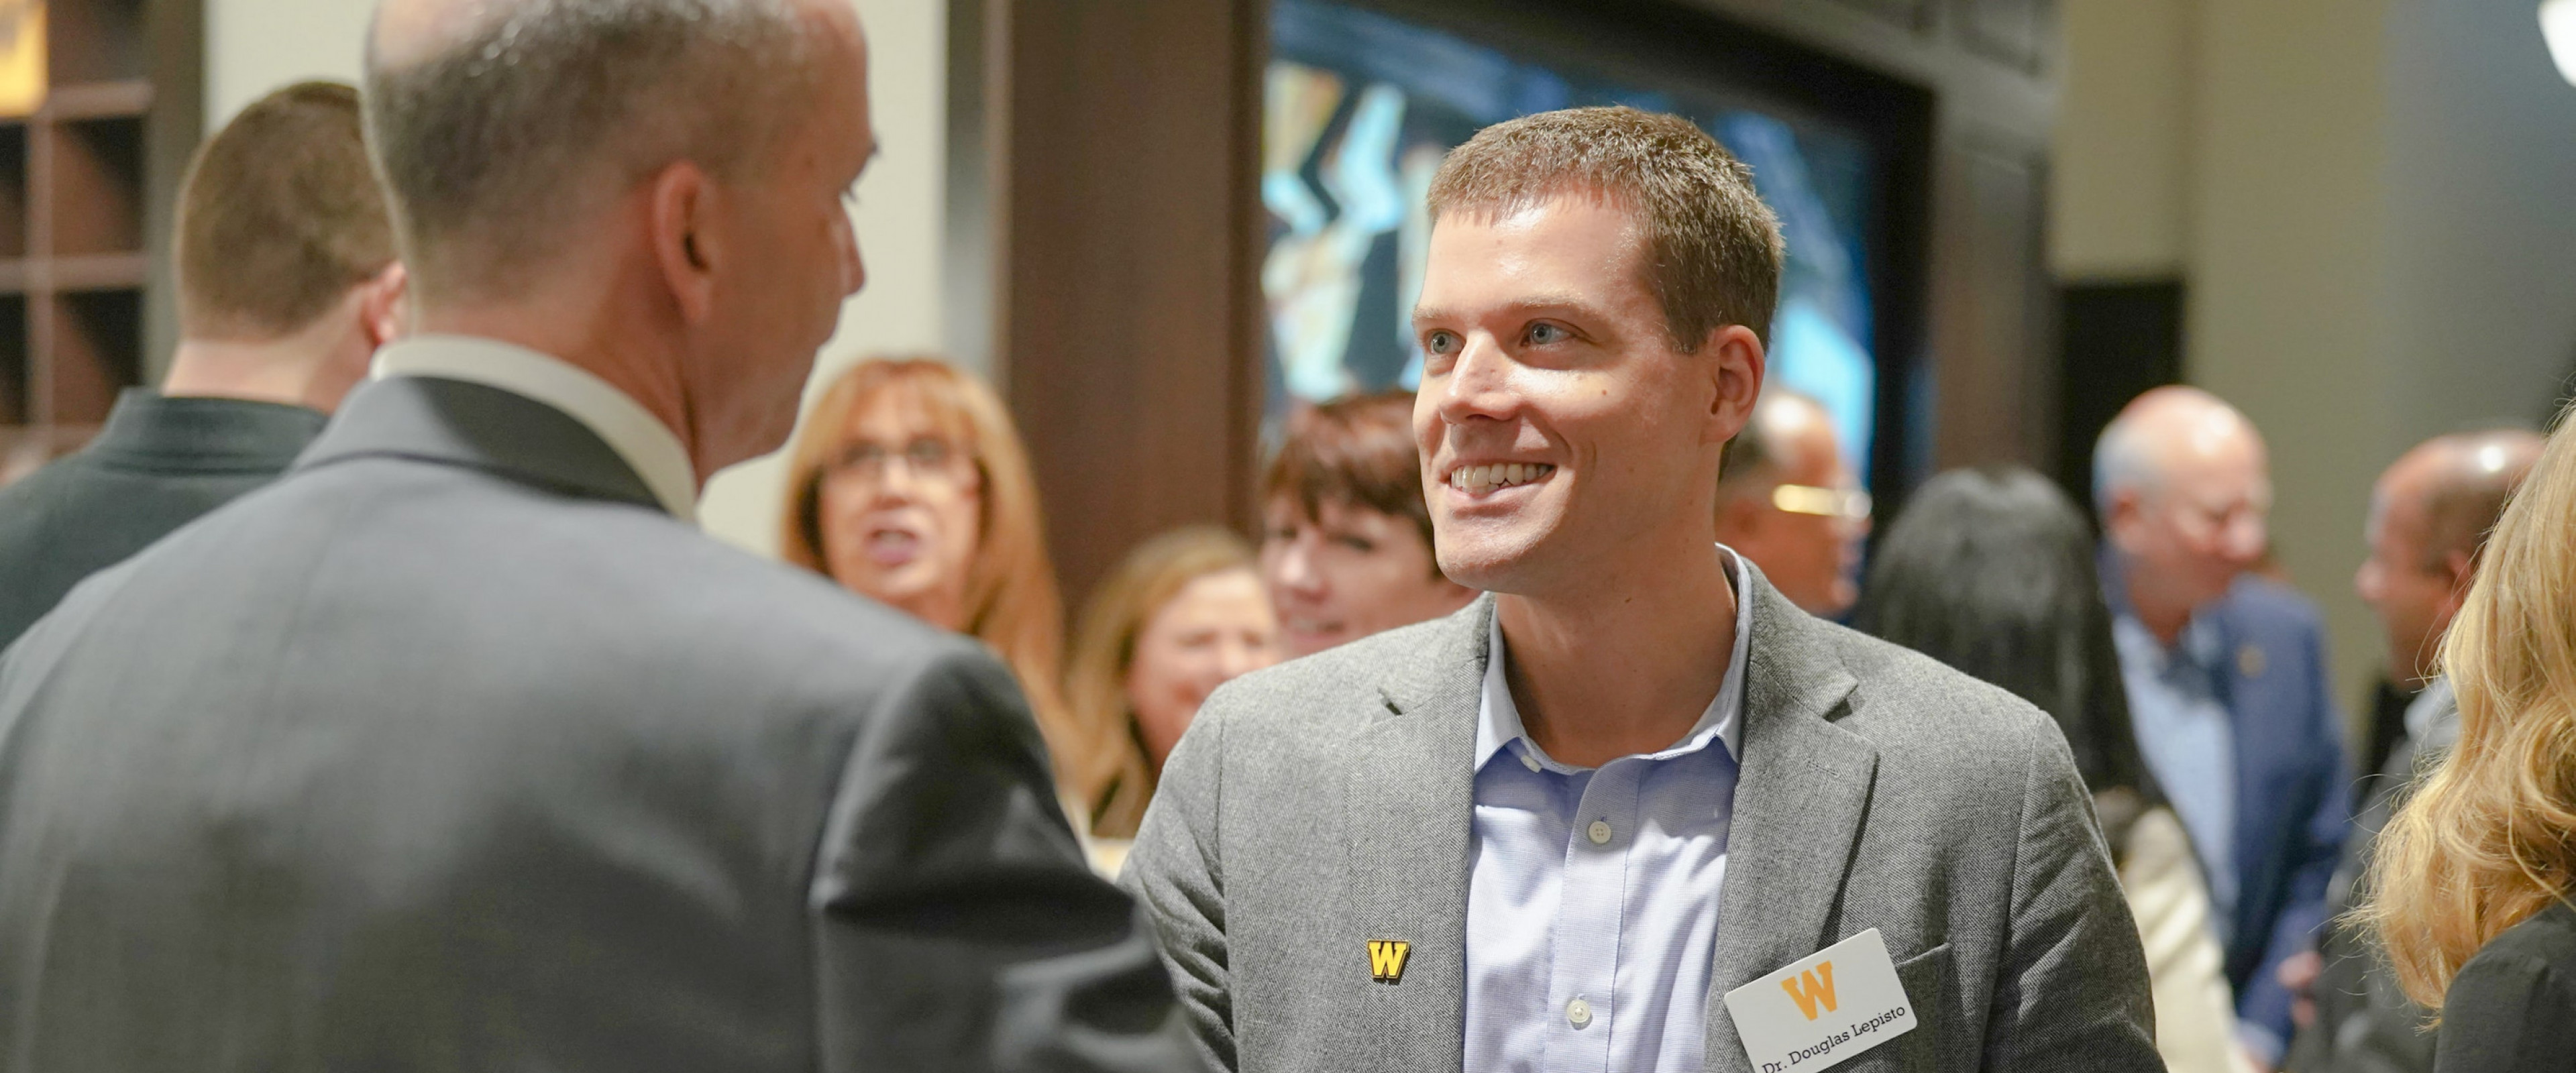 Dr. Doug Lepisto, shakes hands, before the COVID-19 pandemic, at a WMU Haworth event.